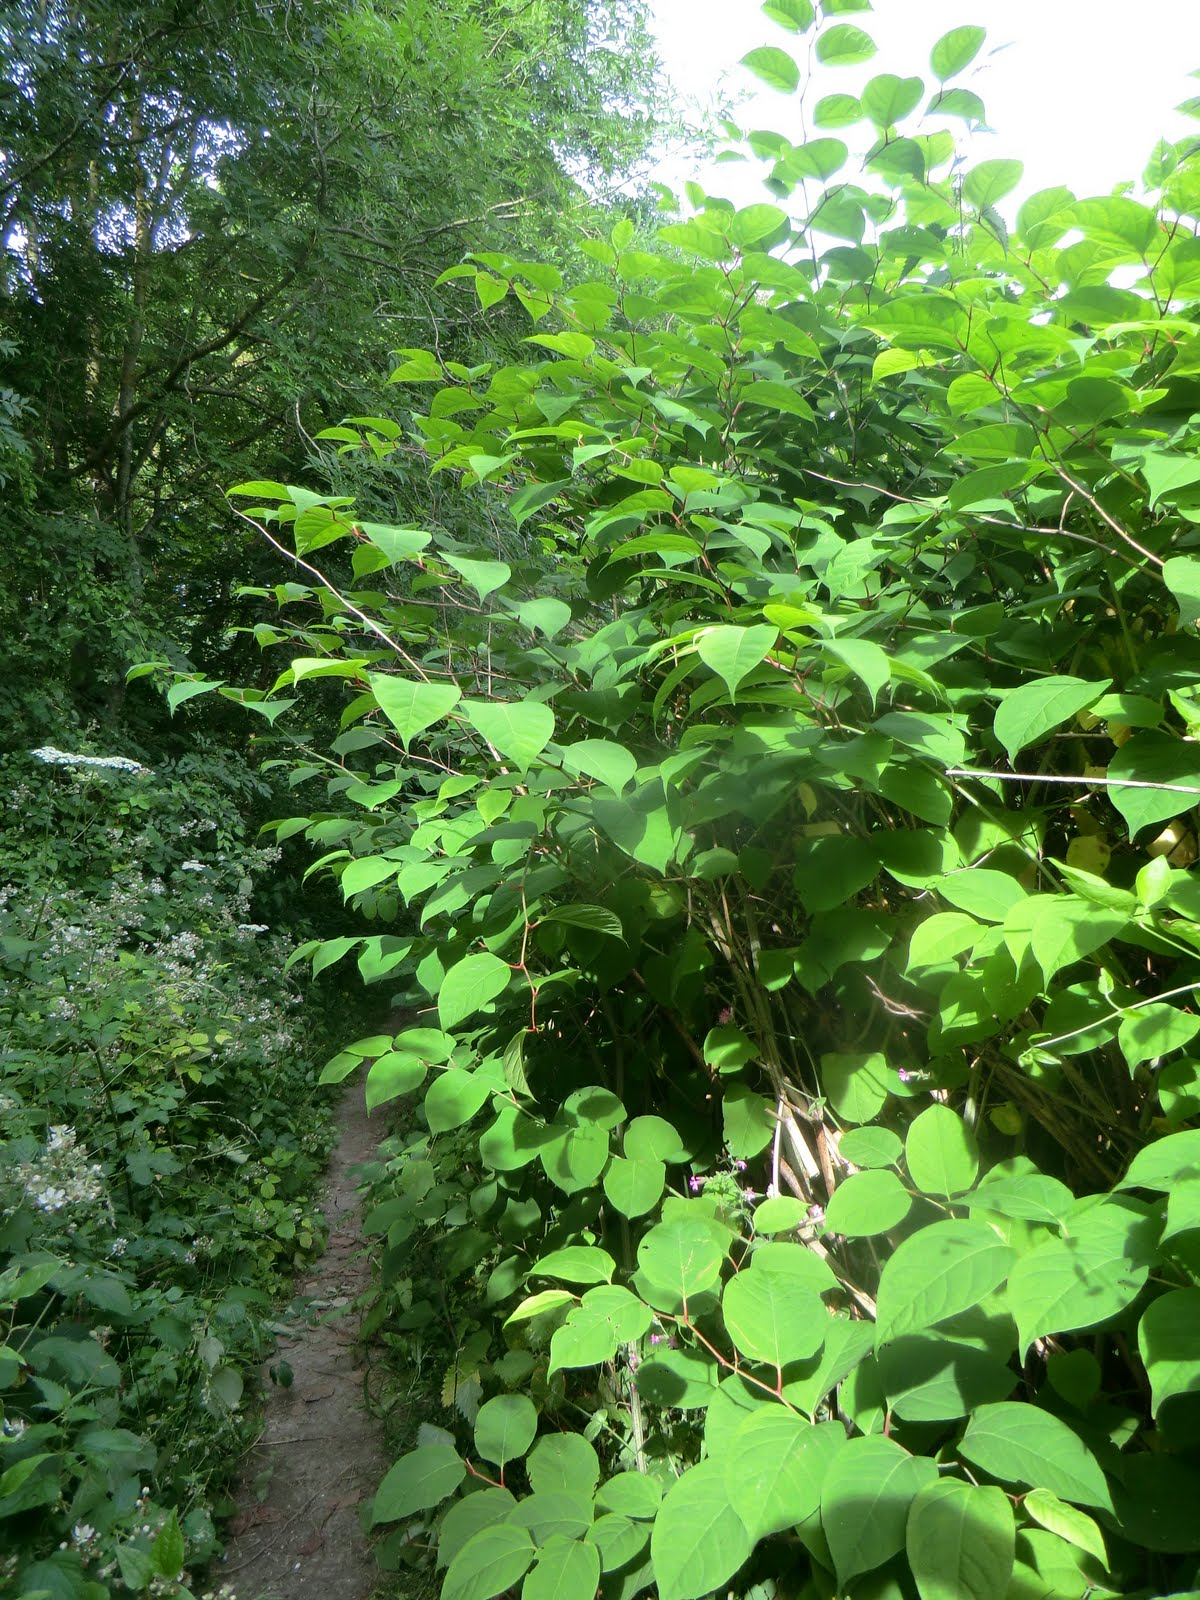 CIMG2430 Japanese knotweed invades the NDW